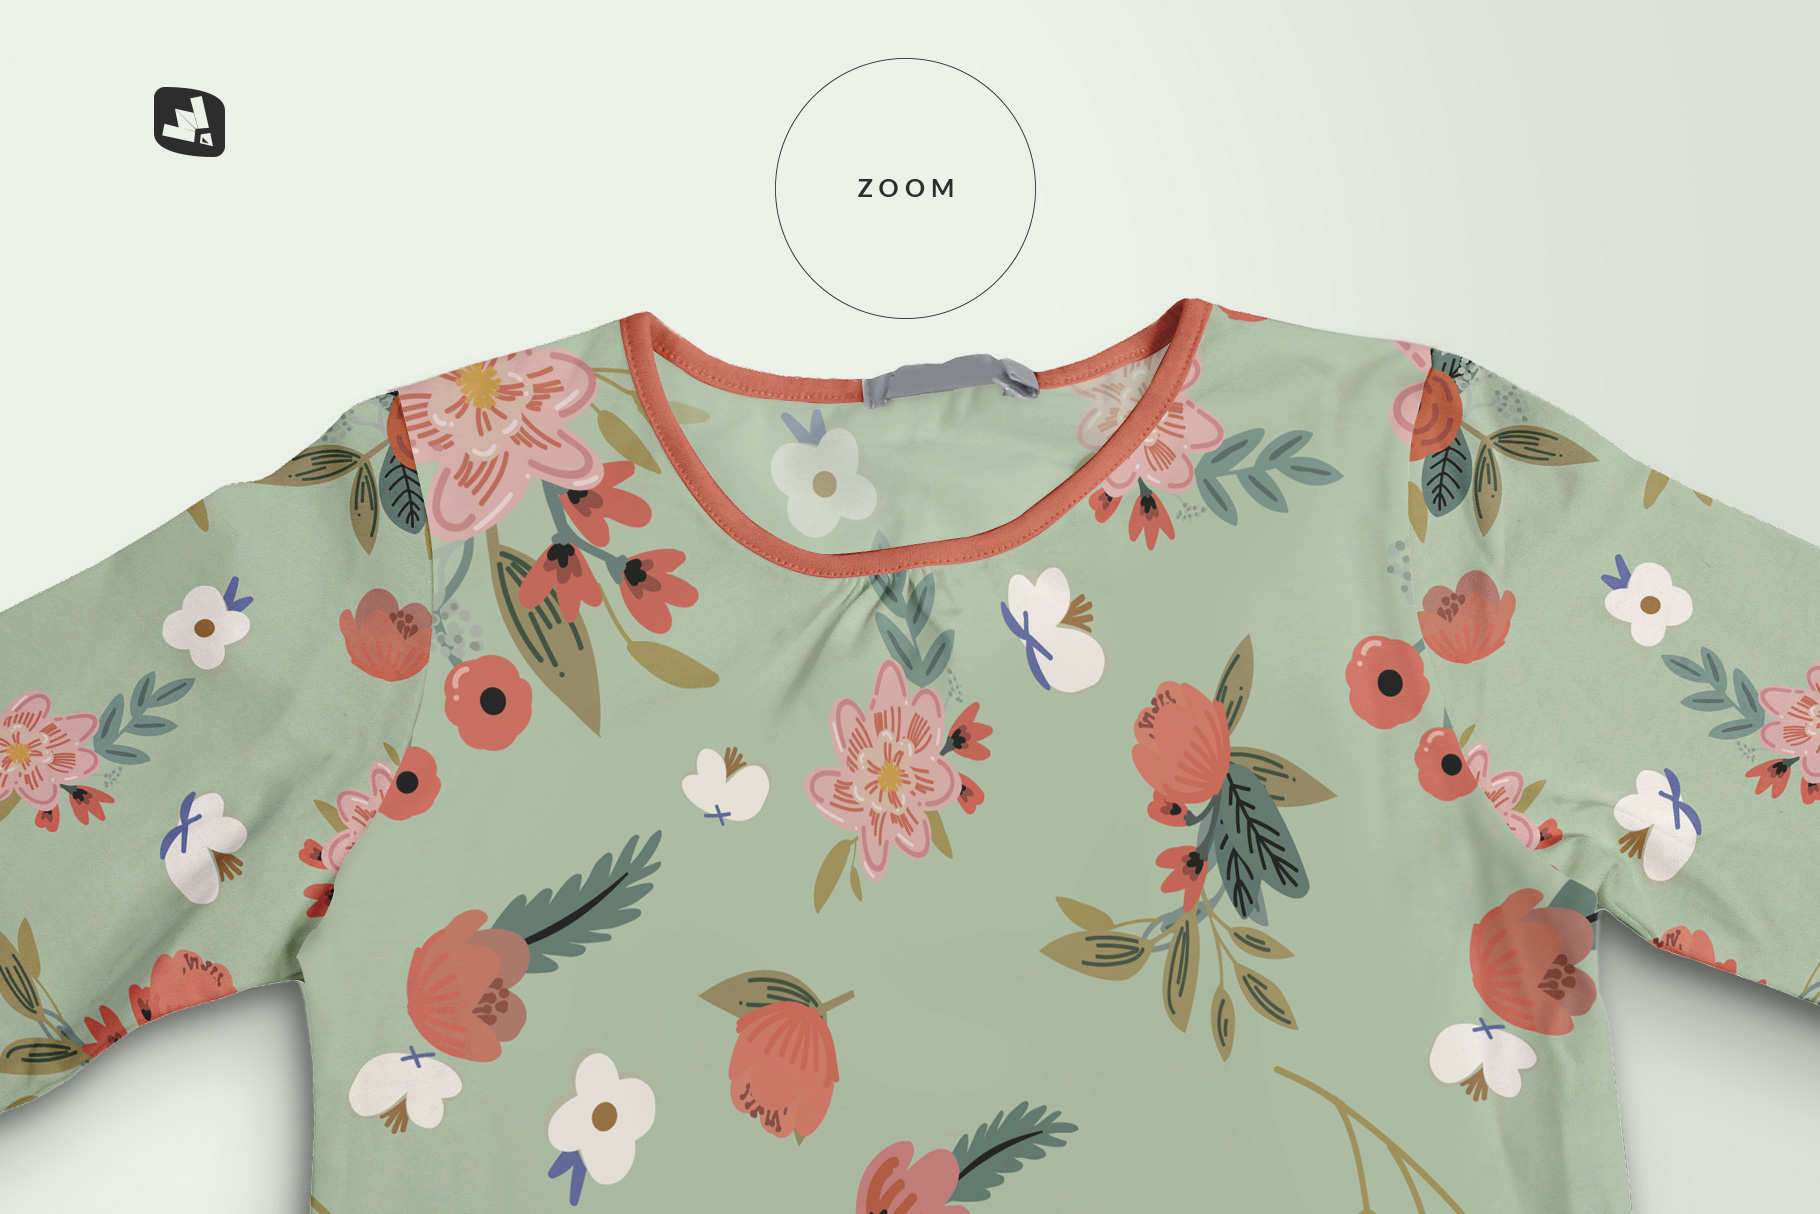 zoomed in image of the top view girls full sleeve top mockup